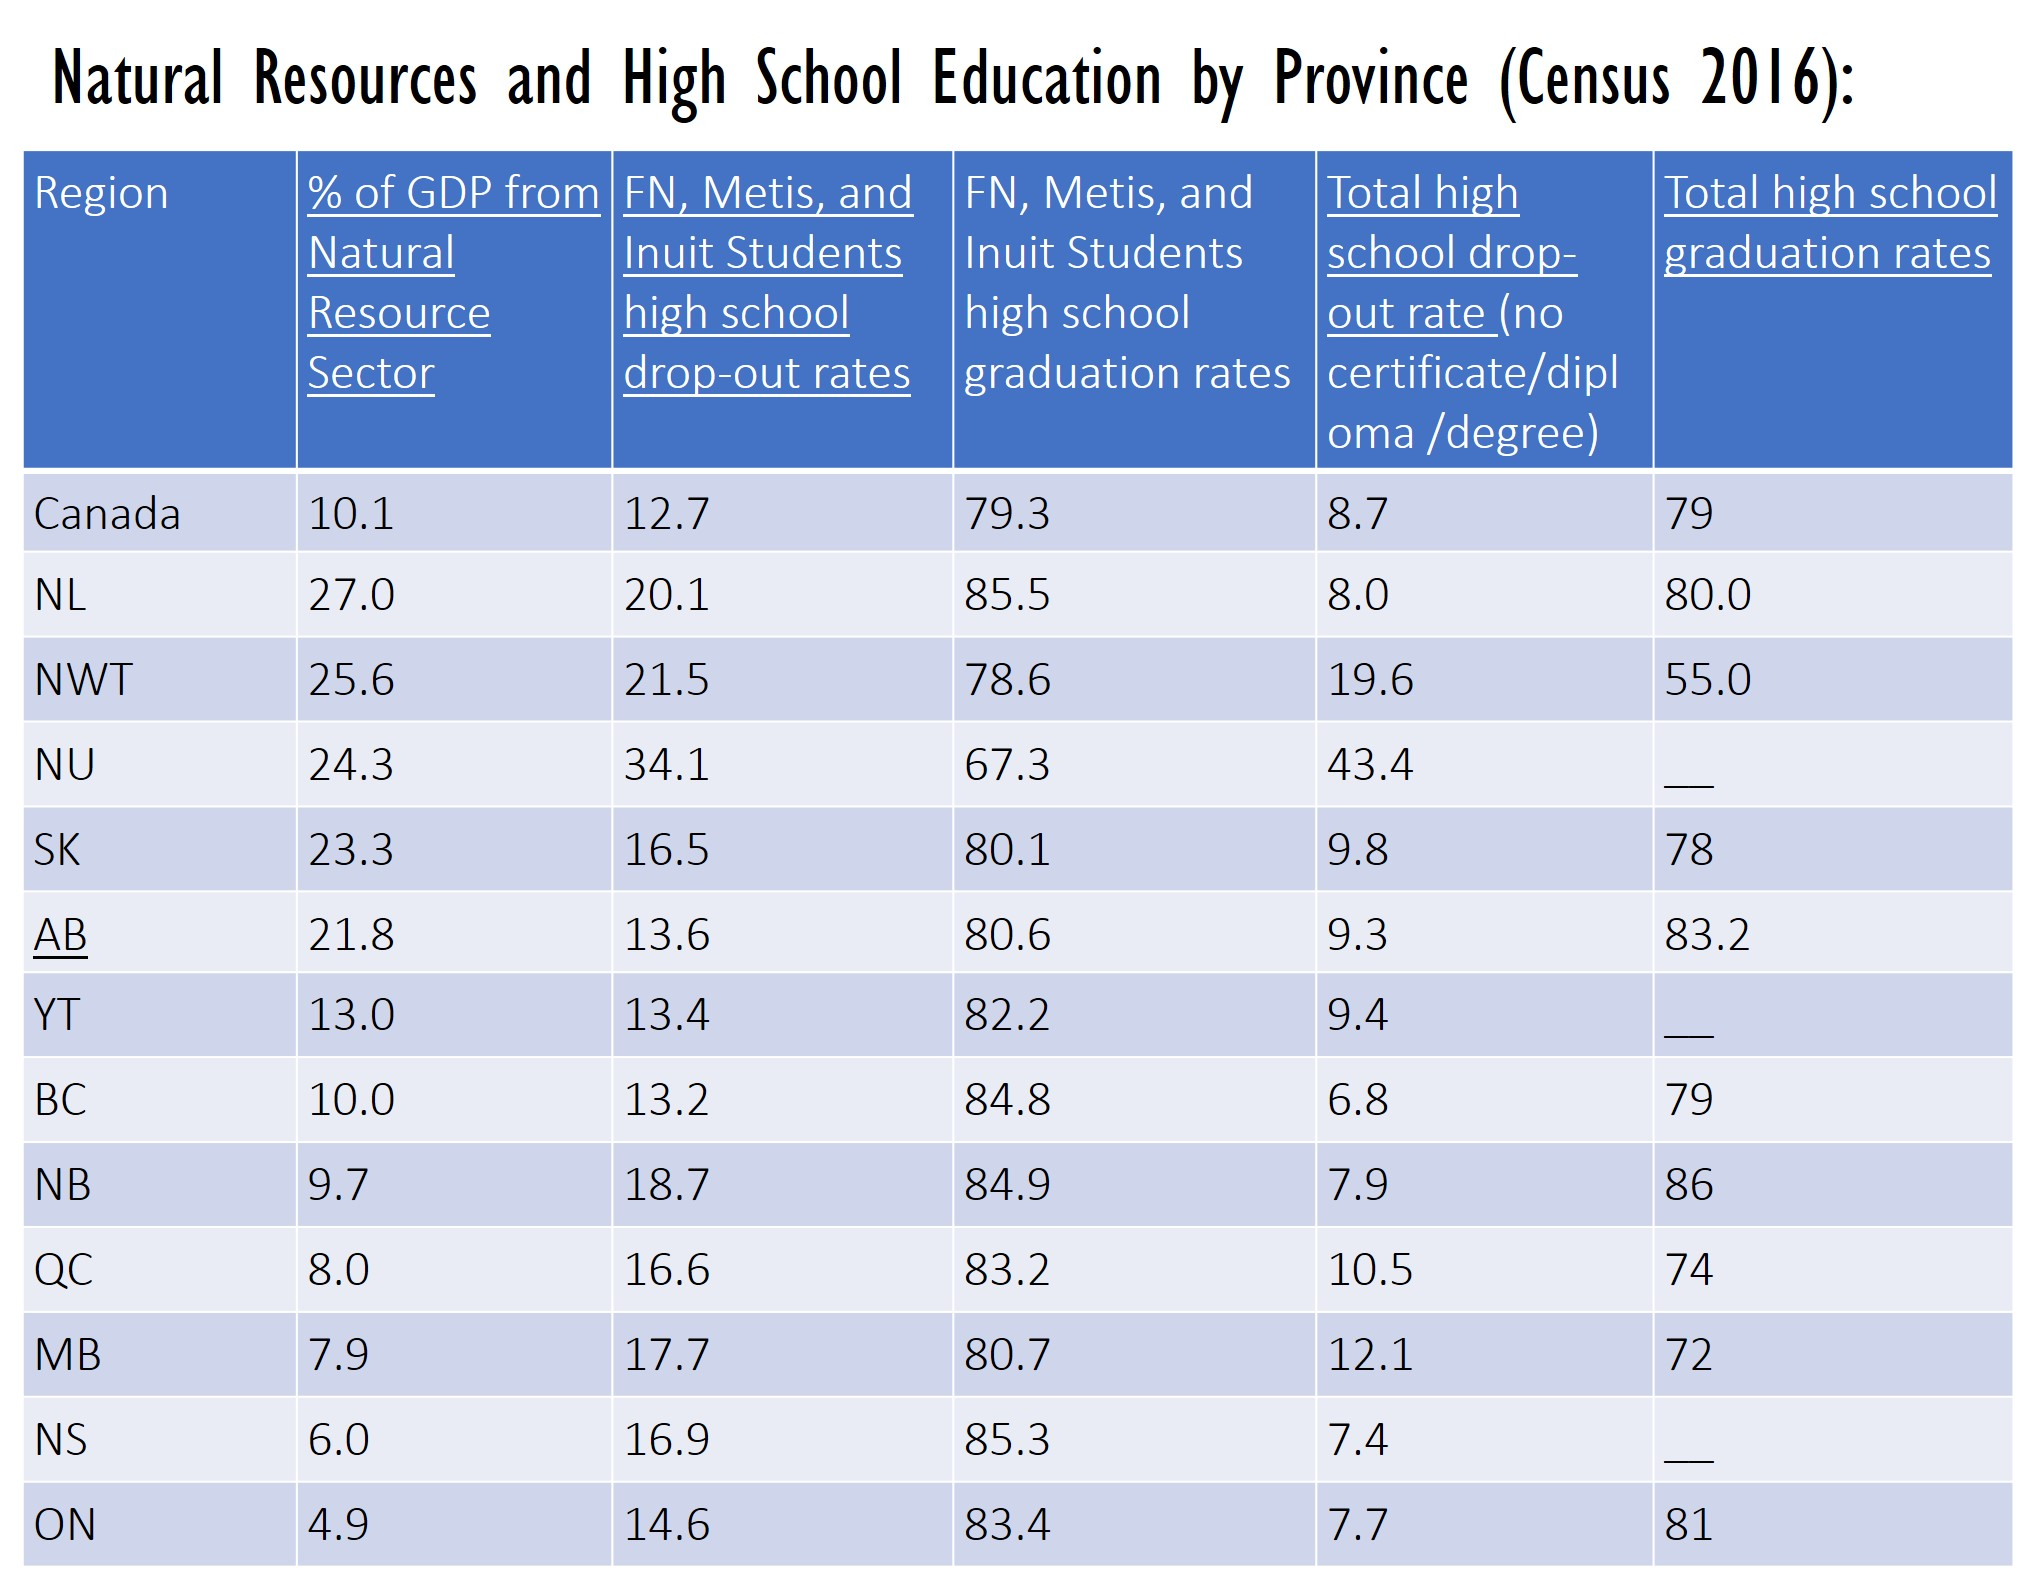 Natural Resources and High School Education by Province (Census 2016)